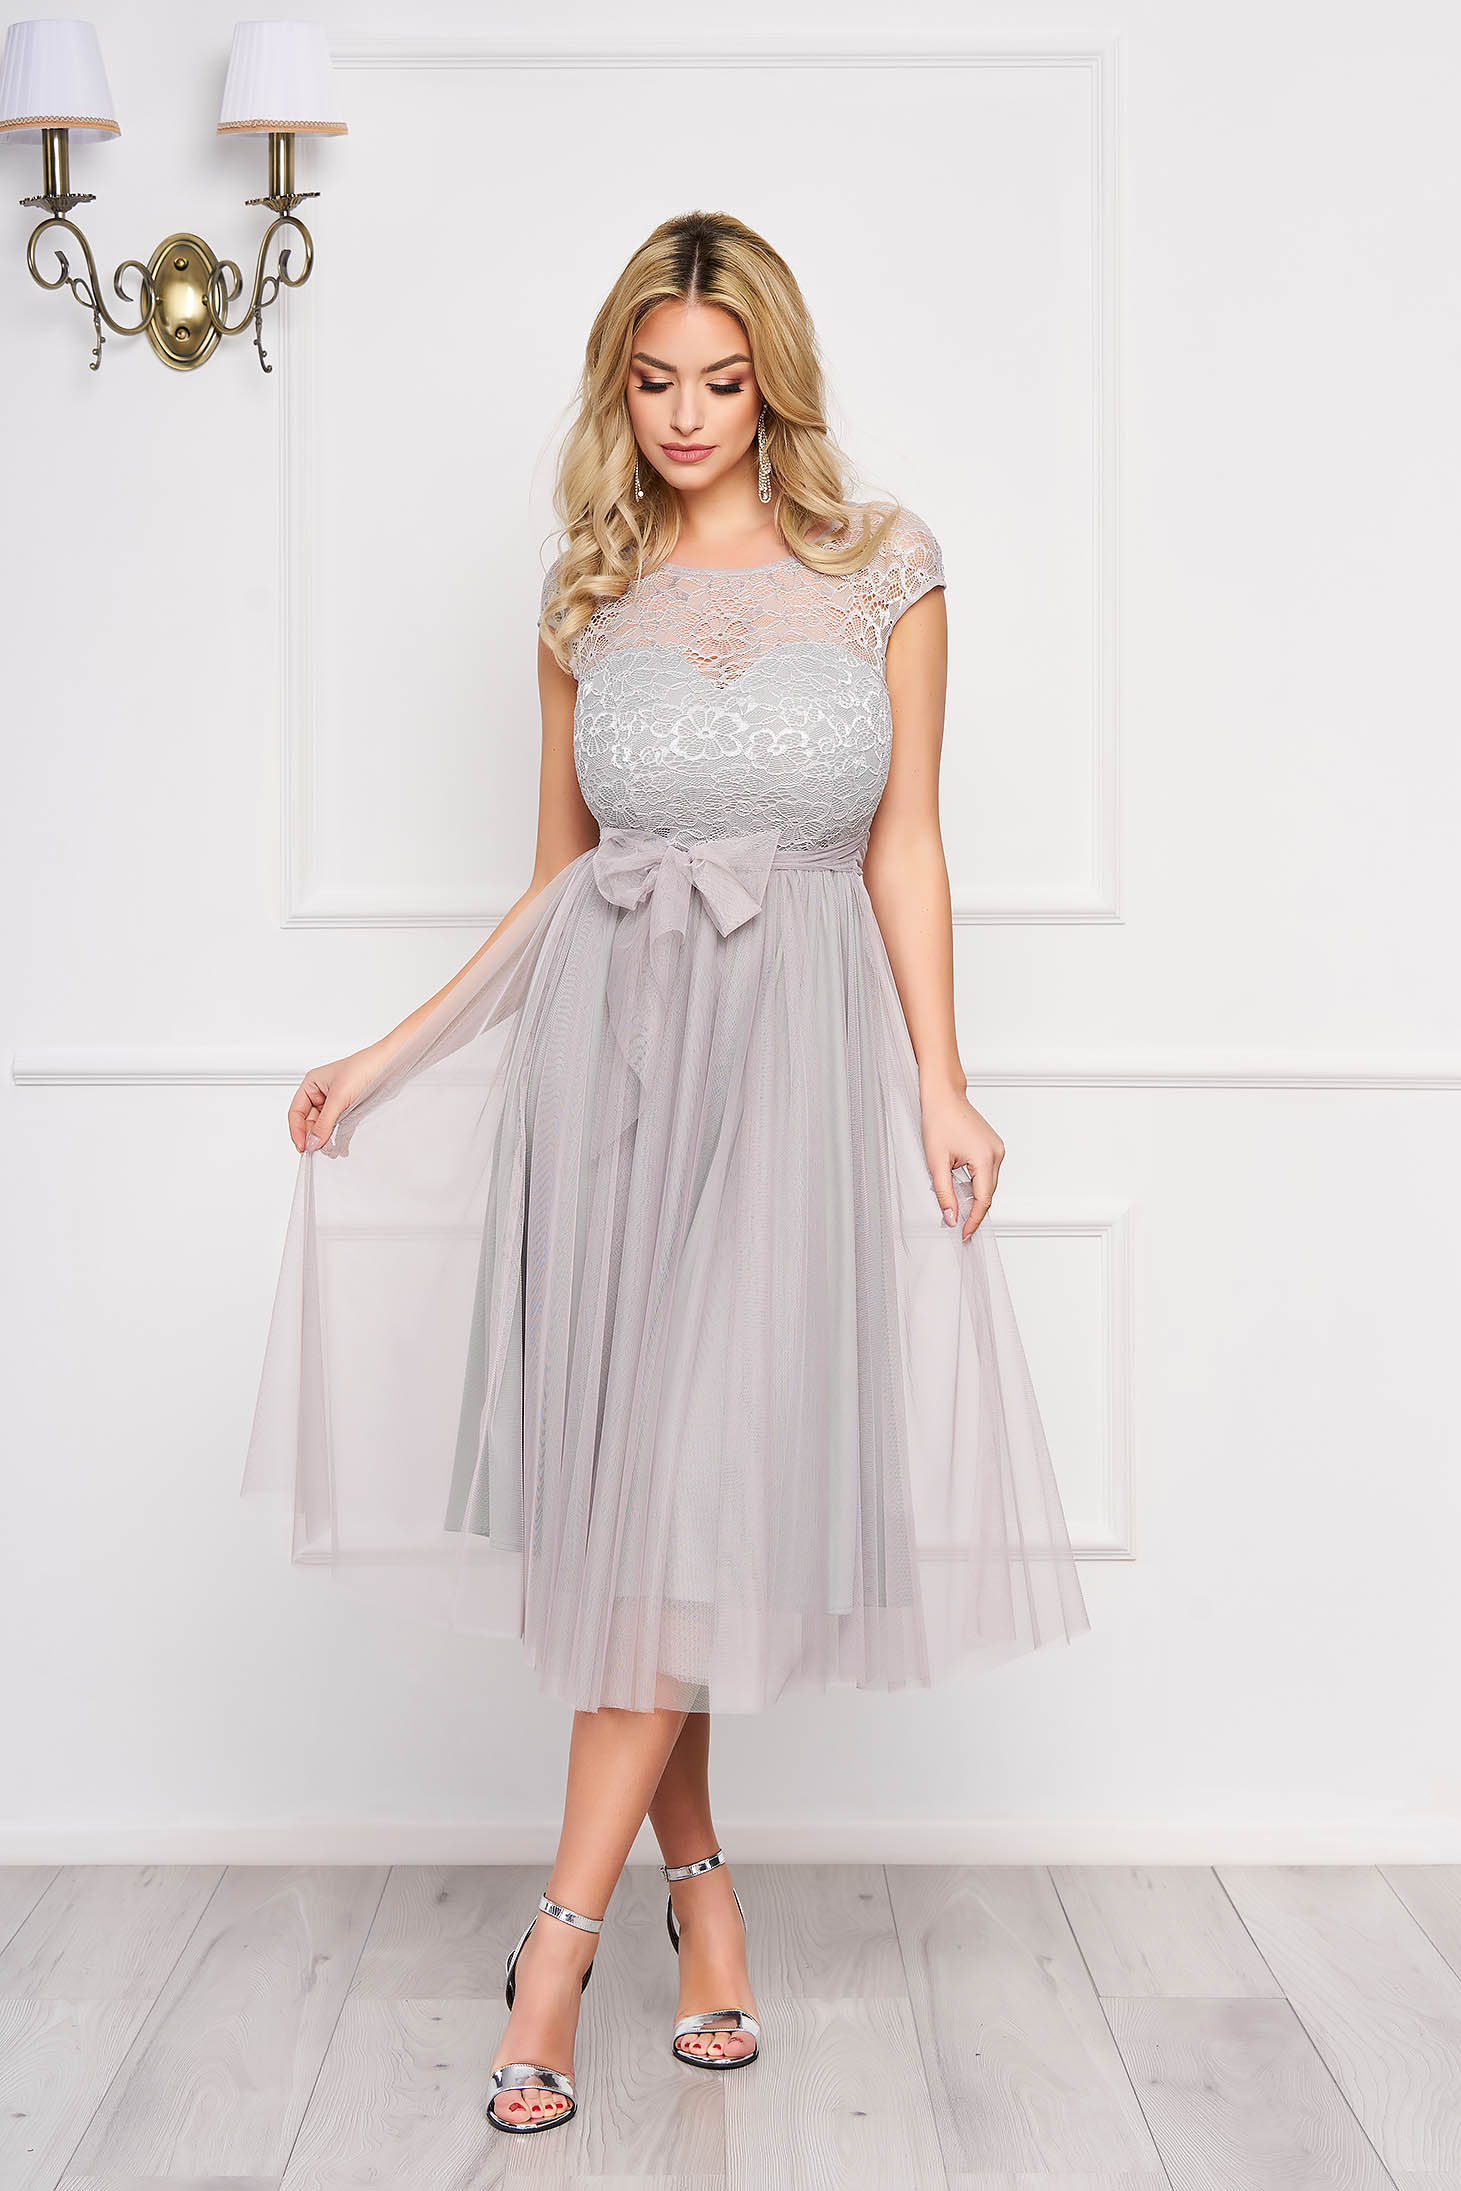 Dress StarShinerS grey midi occasional cloche laced accessorized with tied waistband